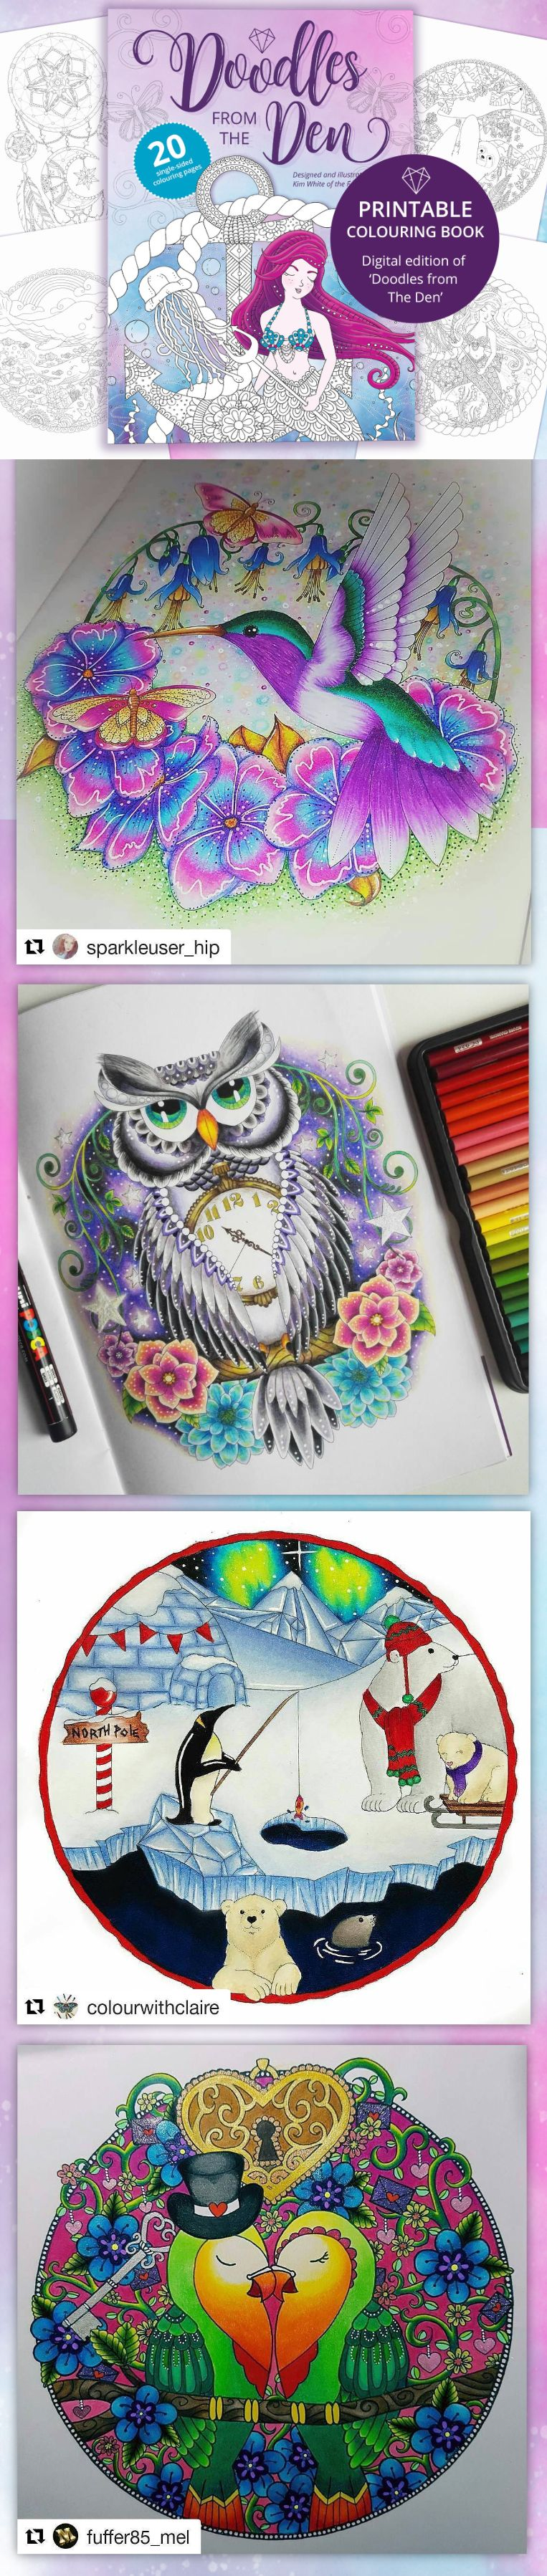 Printable Coloring Books Digital Adult Colouring Cute Pages Book PDF Download Mindfulness Gift Christmas Stress Relief Aid